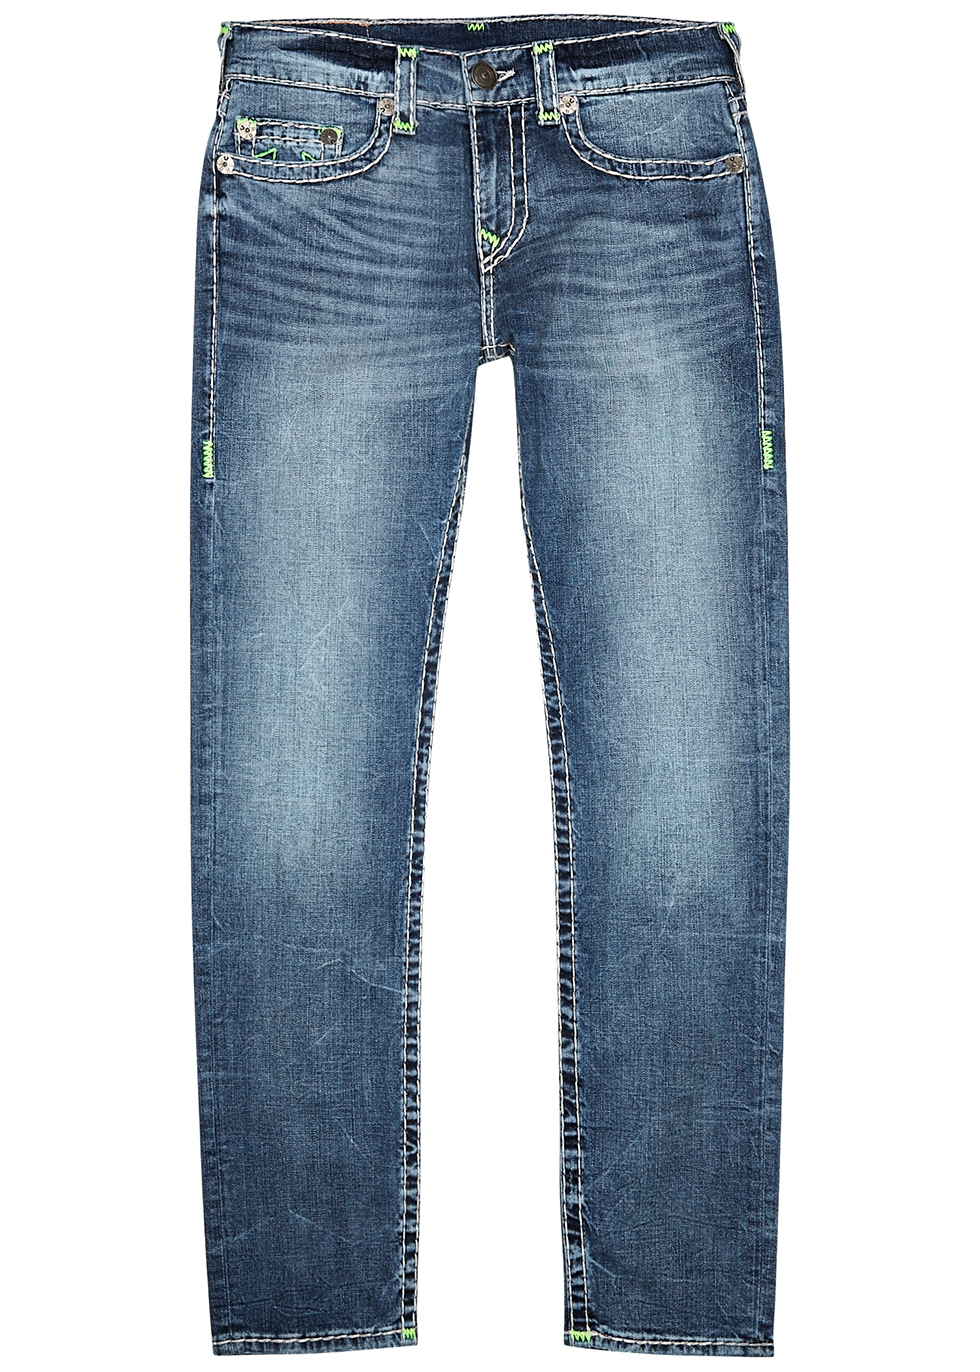 Rocco blue skinny jeans